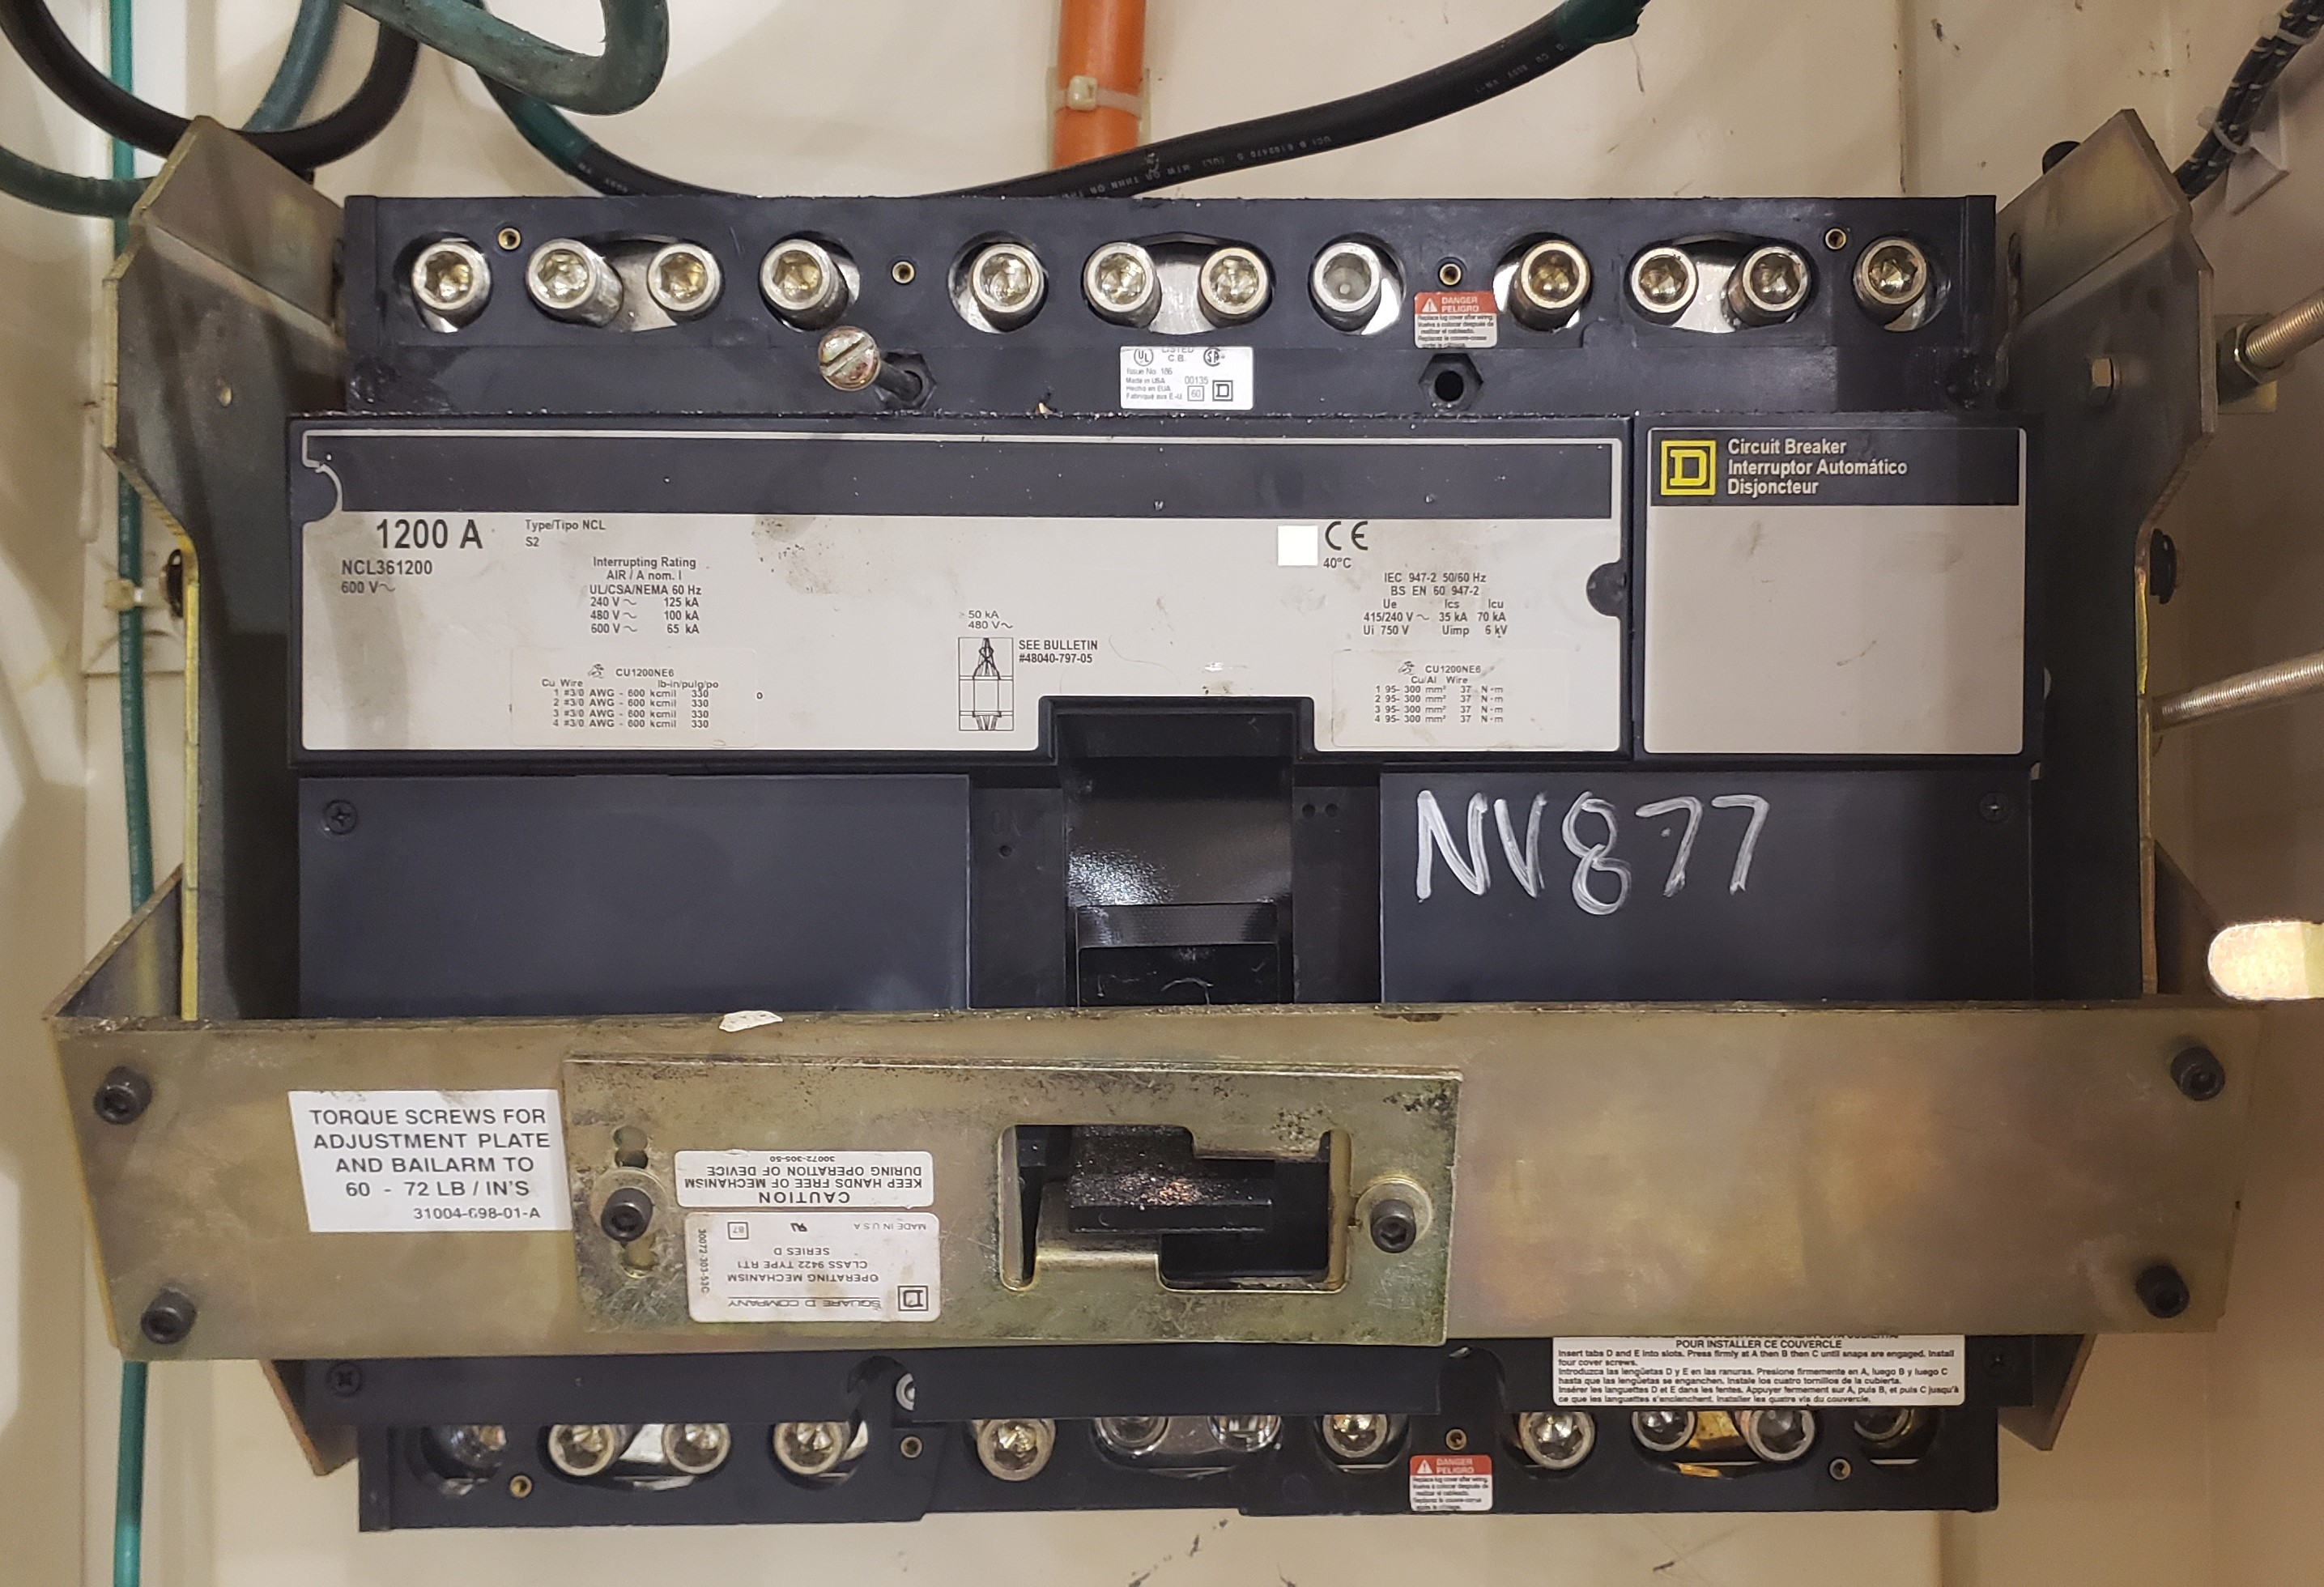 Square D 1200 Amp NCL361200 Molded Case Breaker